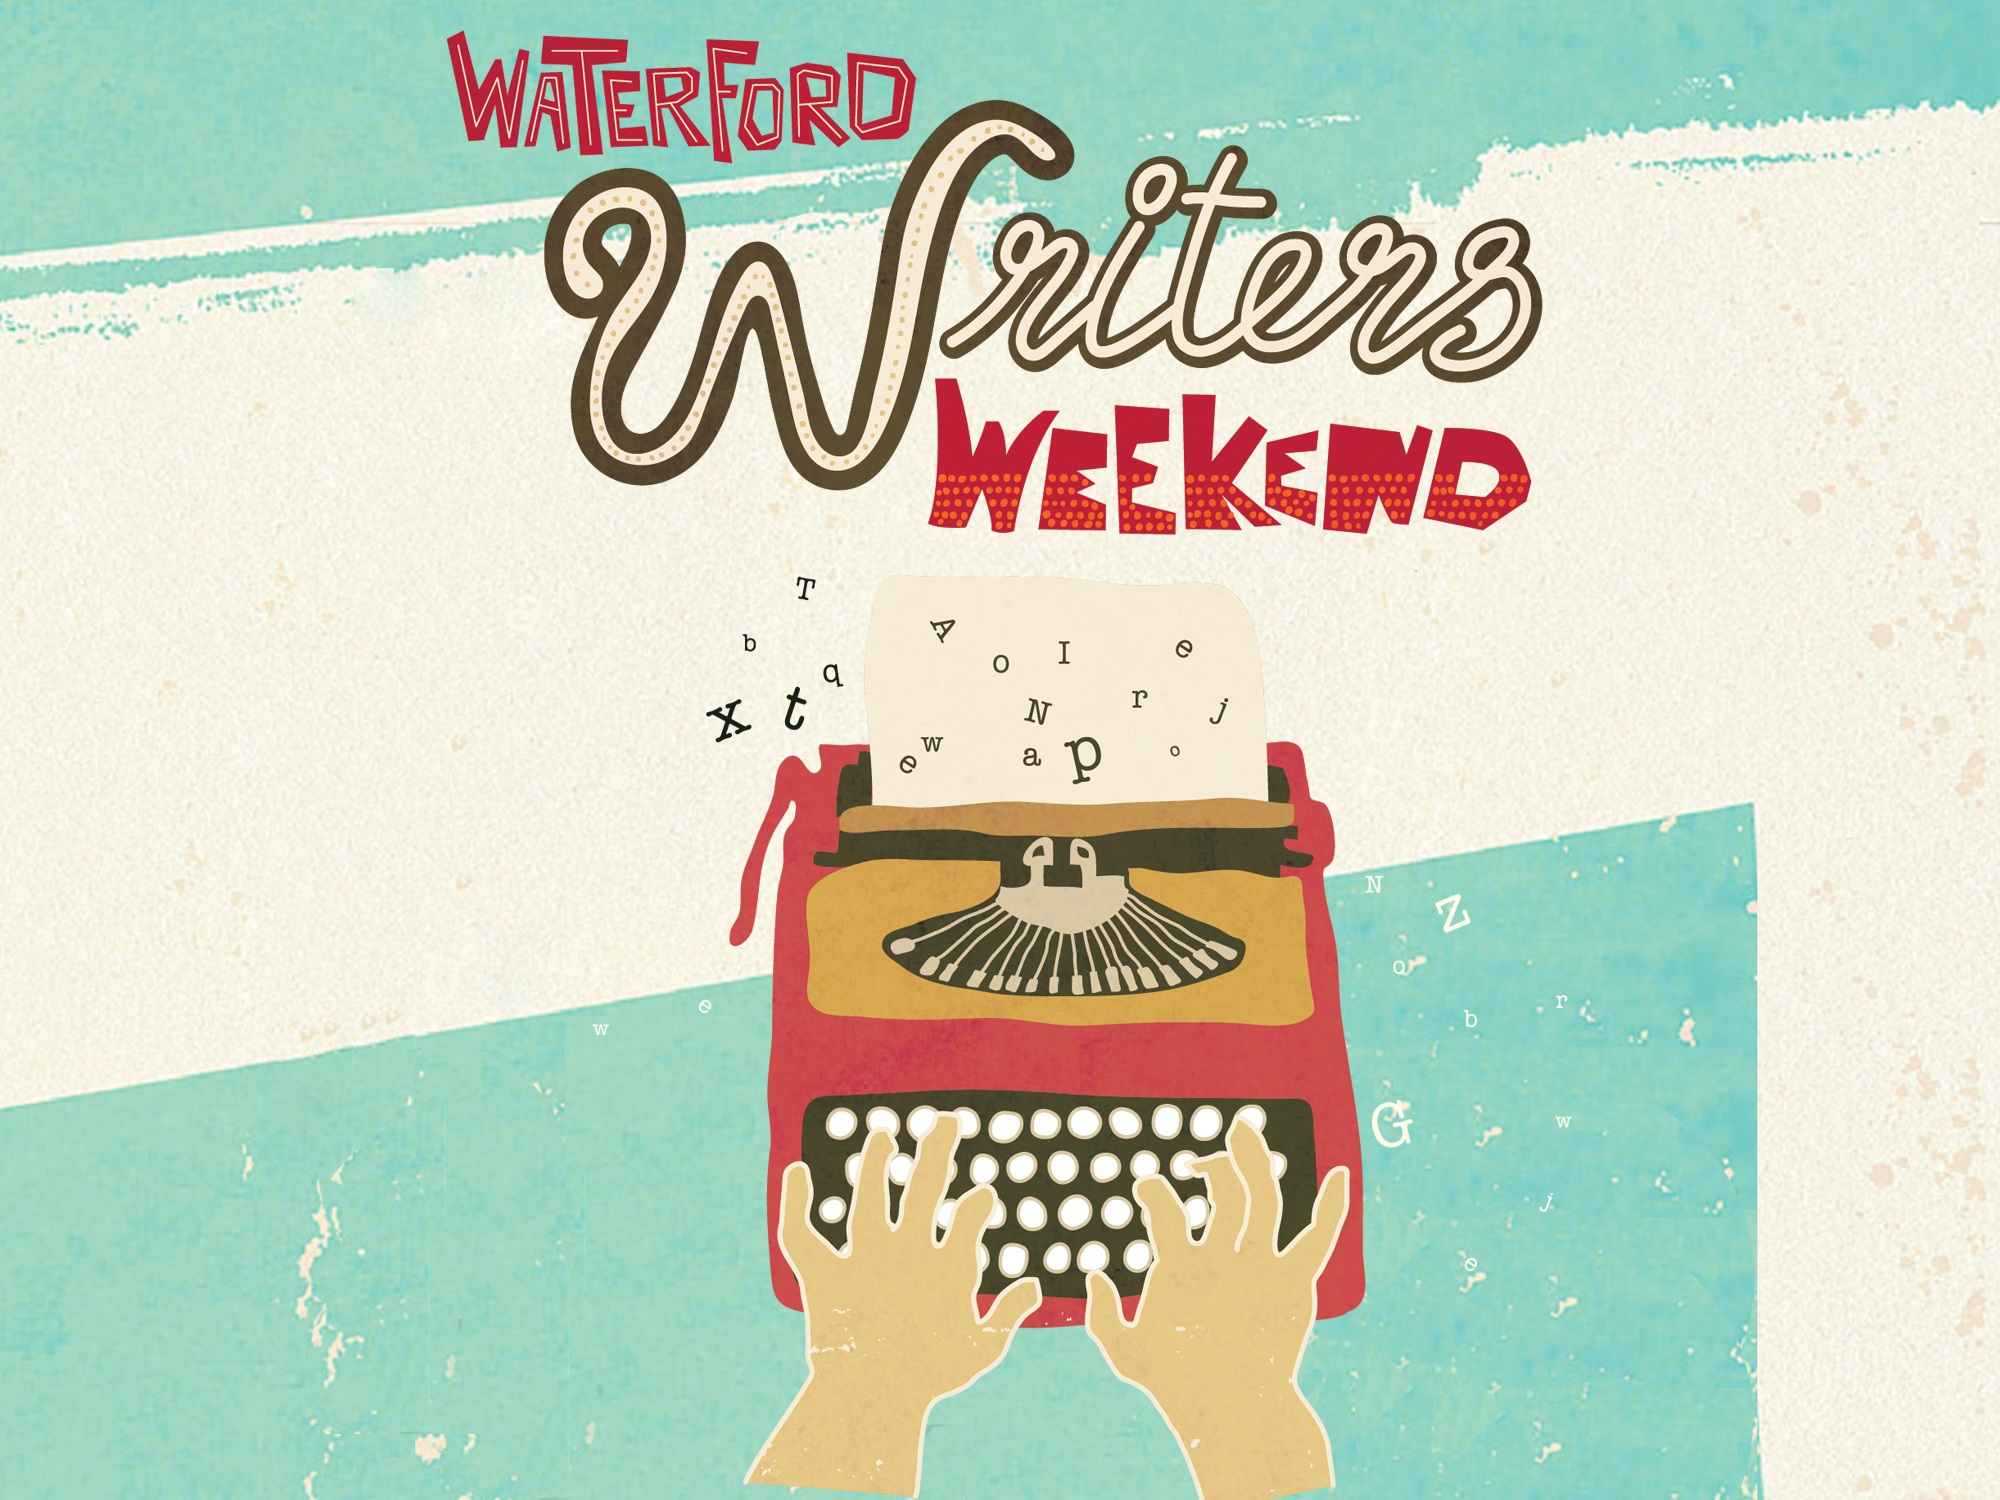 Listen: The Waterford Writers Weekend kicks off this Friday, all part of the Imagine Festival